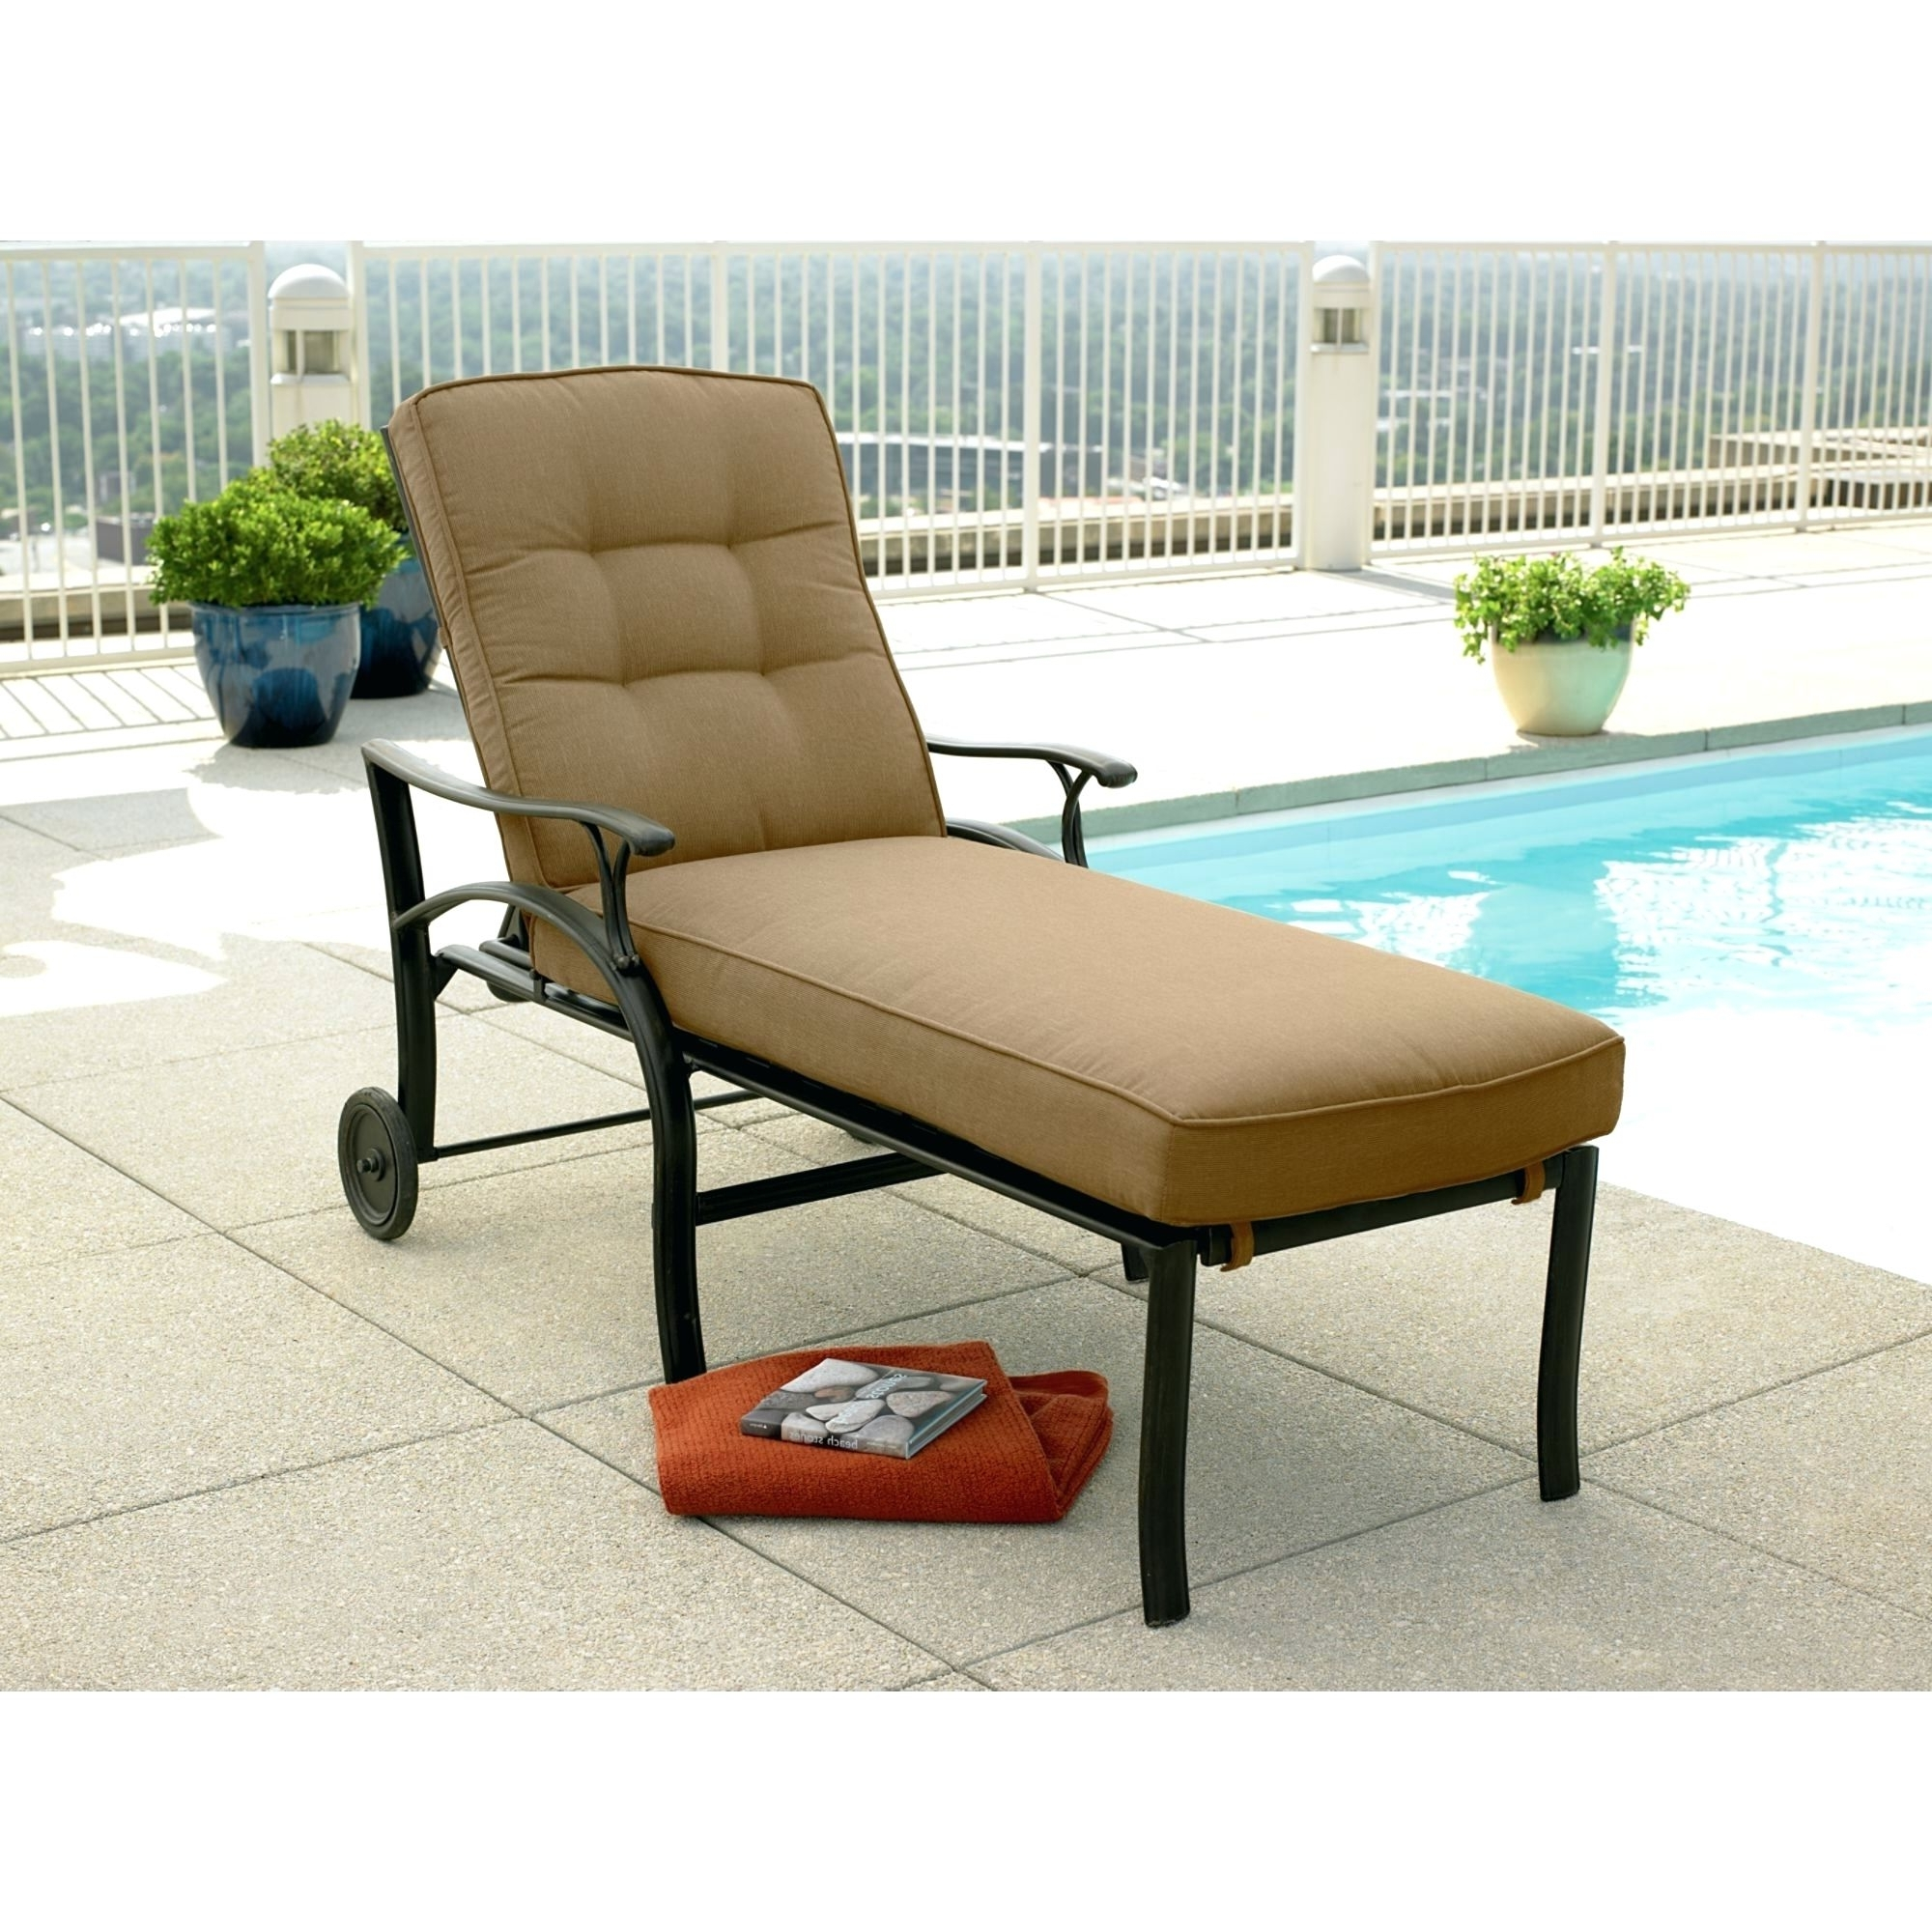 Deck Chaise Lounge Chairs Inside Popular Pool Deck Chaise Lounge Chairs • Lounge Chairs Ideas (View 14 of 15)